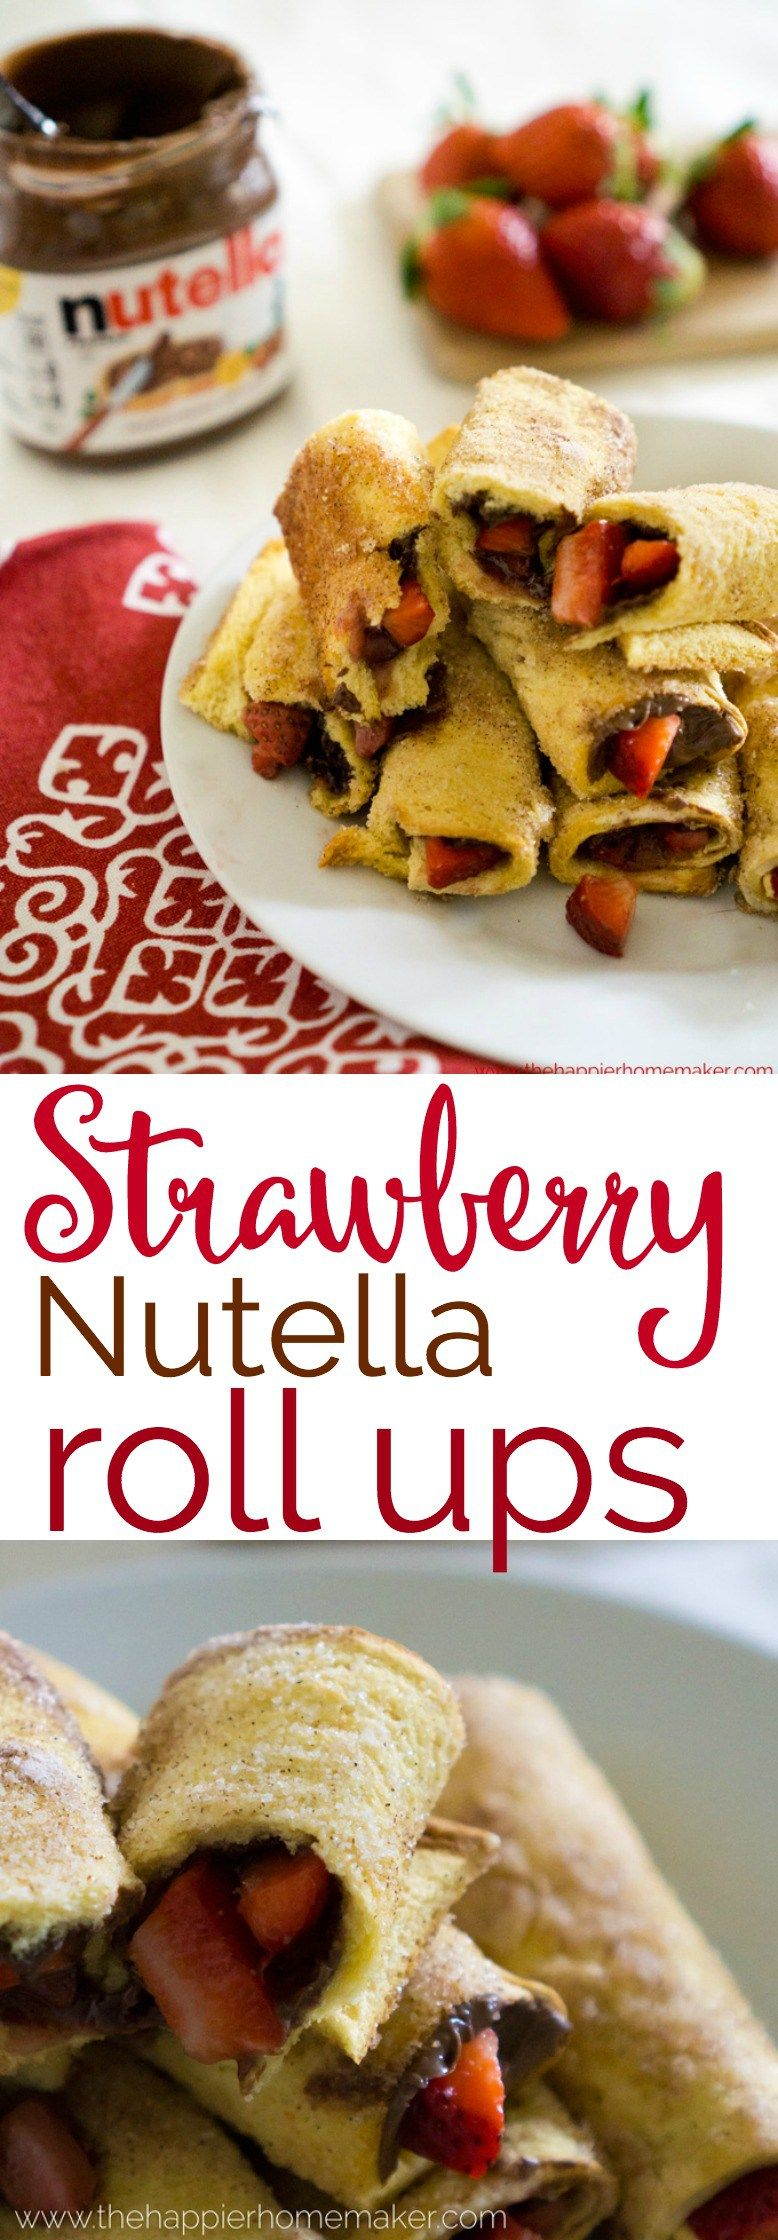 Baked Strawberry Nutella Roll Ups | Recipe | Baked ...